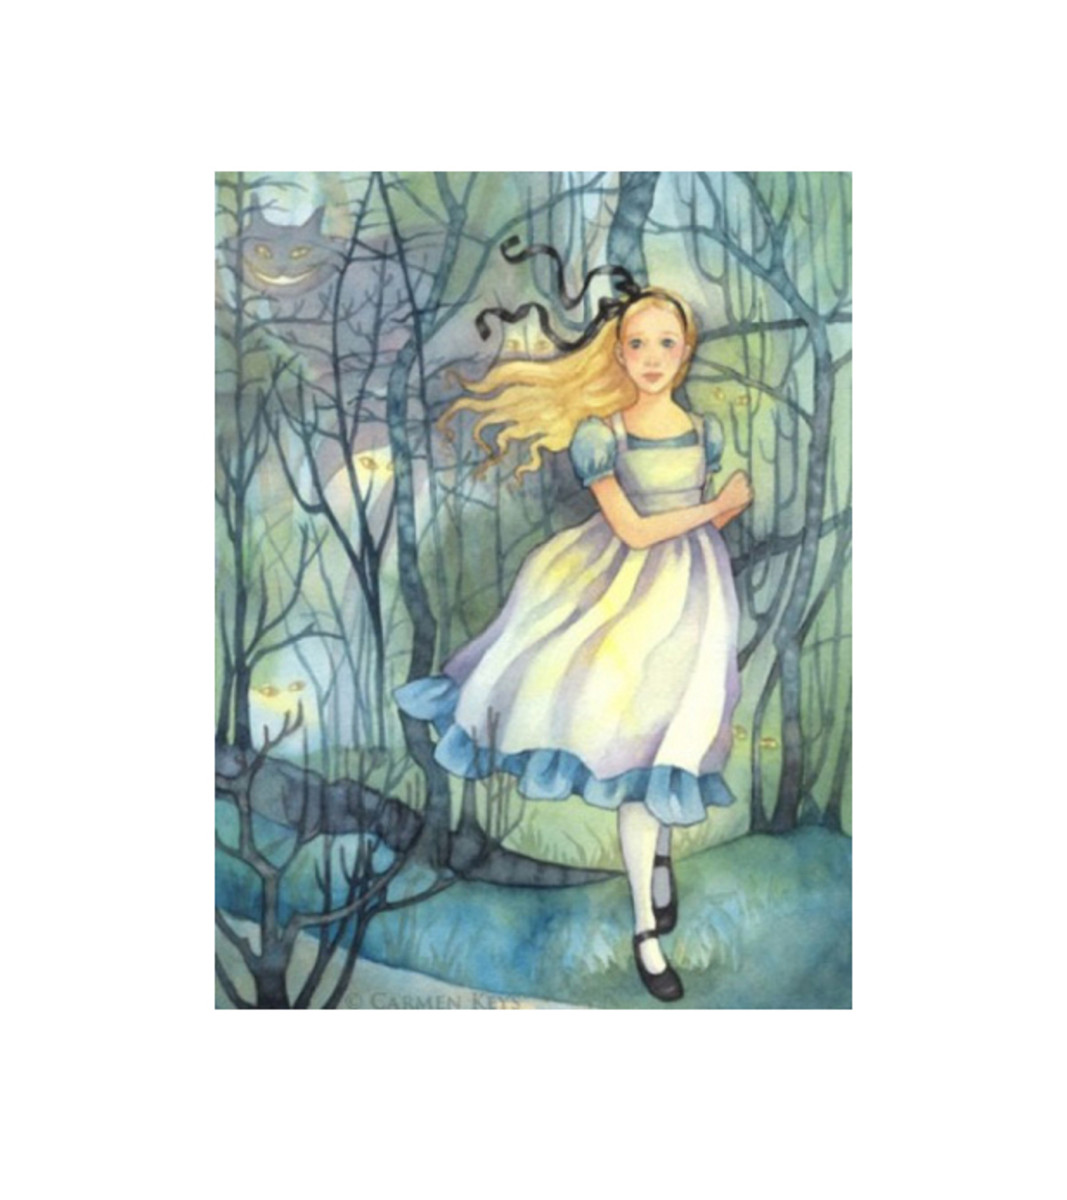 """Alice in the Tulgey Wood"" by Carmen Keys"